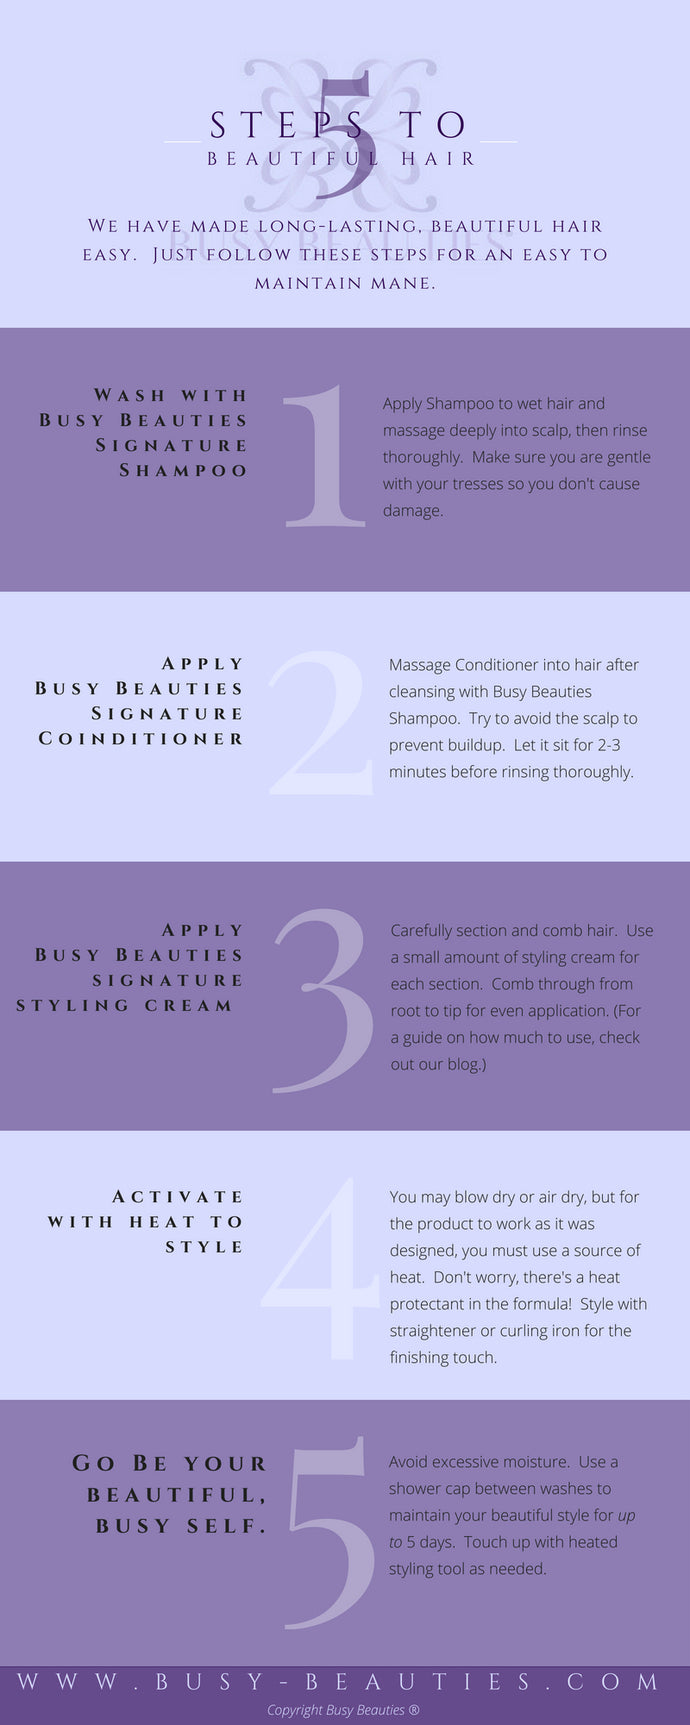 Infographic: 5 Steps to Beautiful Hair